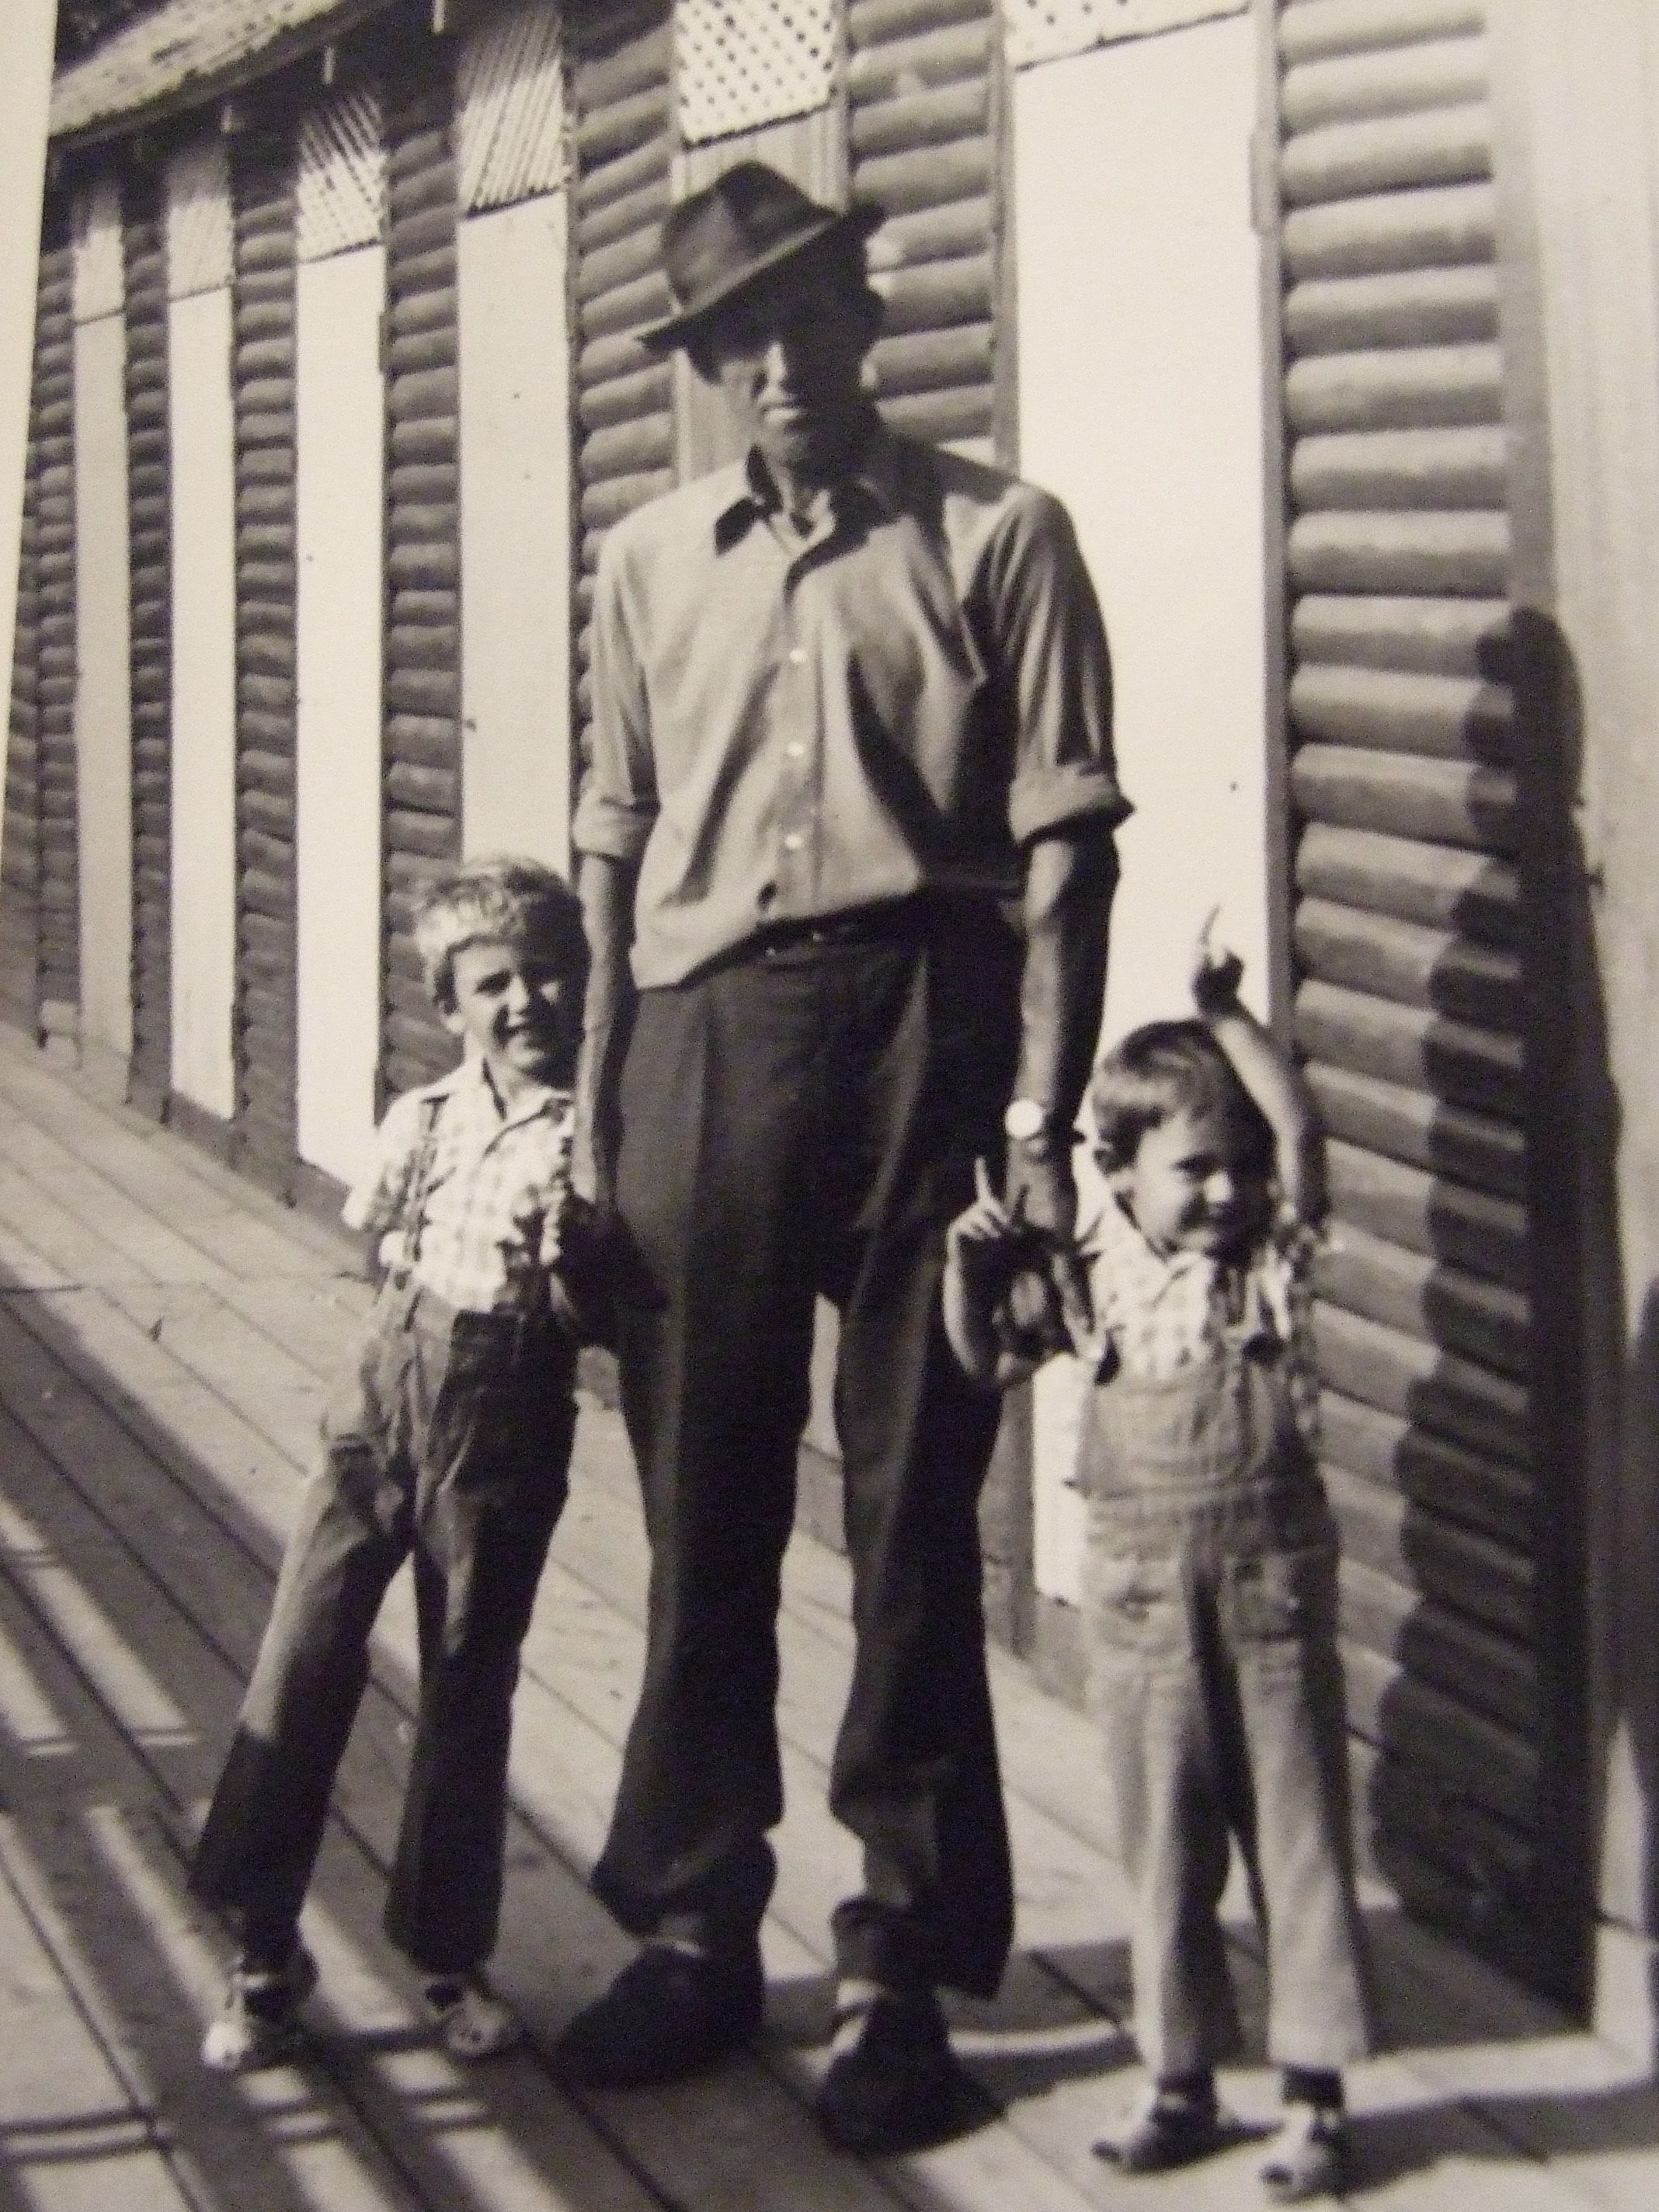 My great-grandfather with his grandchildren